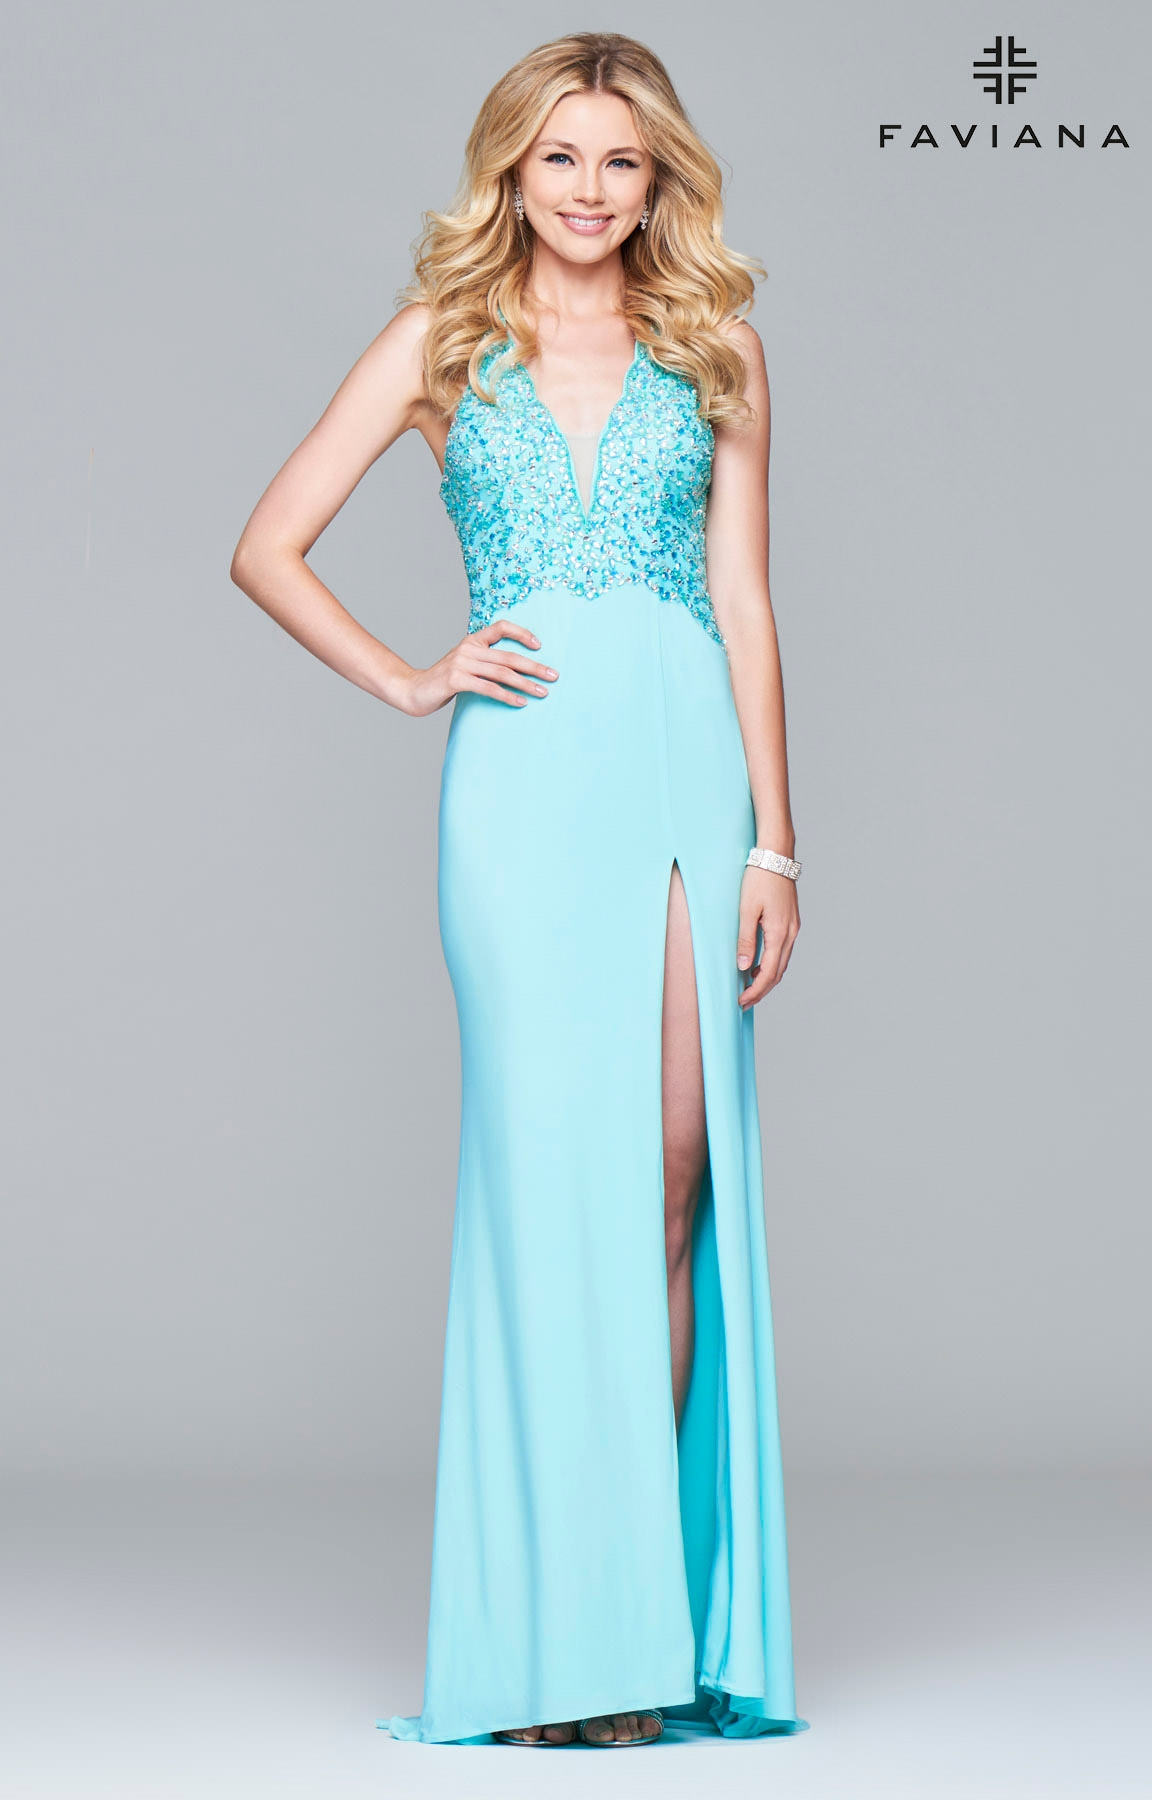 Faviana S7908 - Beaded Halter Jersey Dress Prom Dress